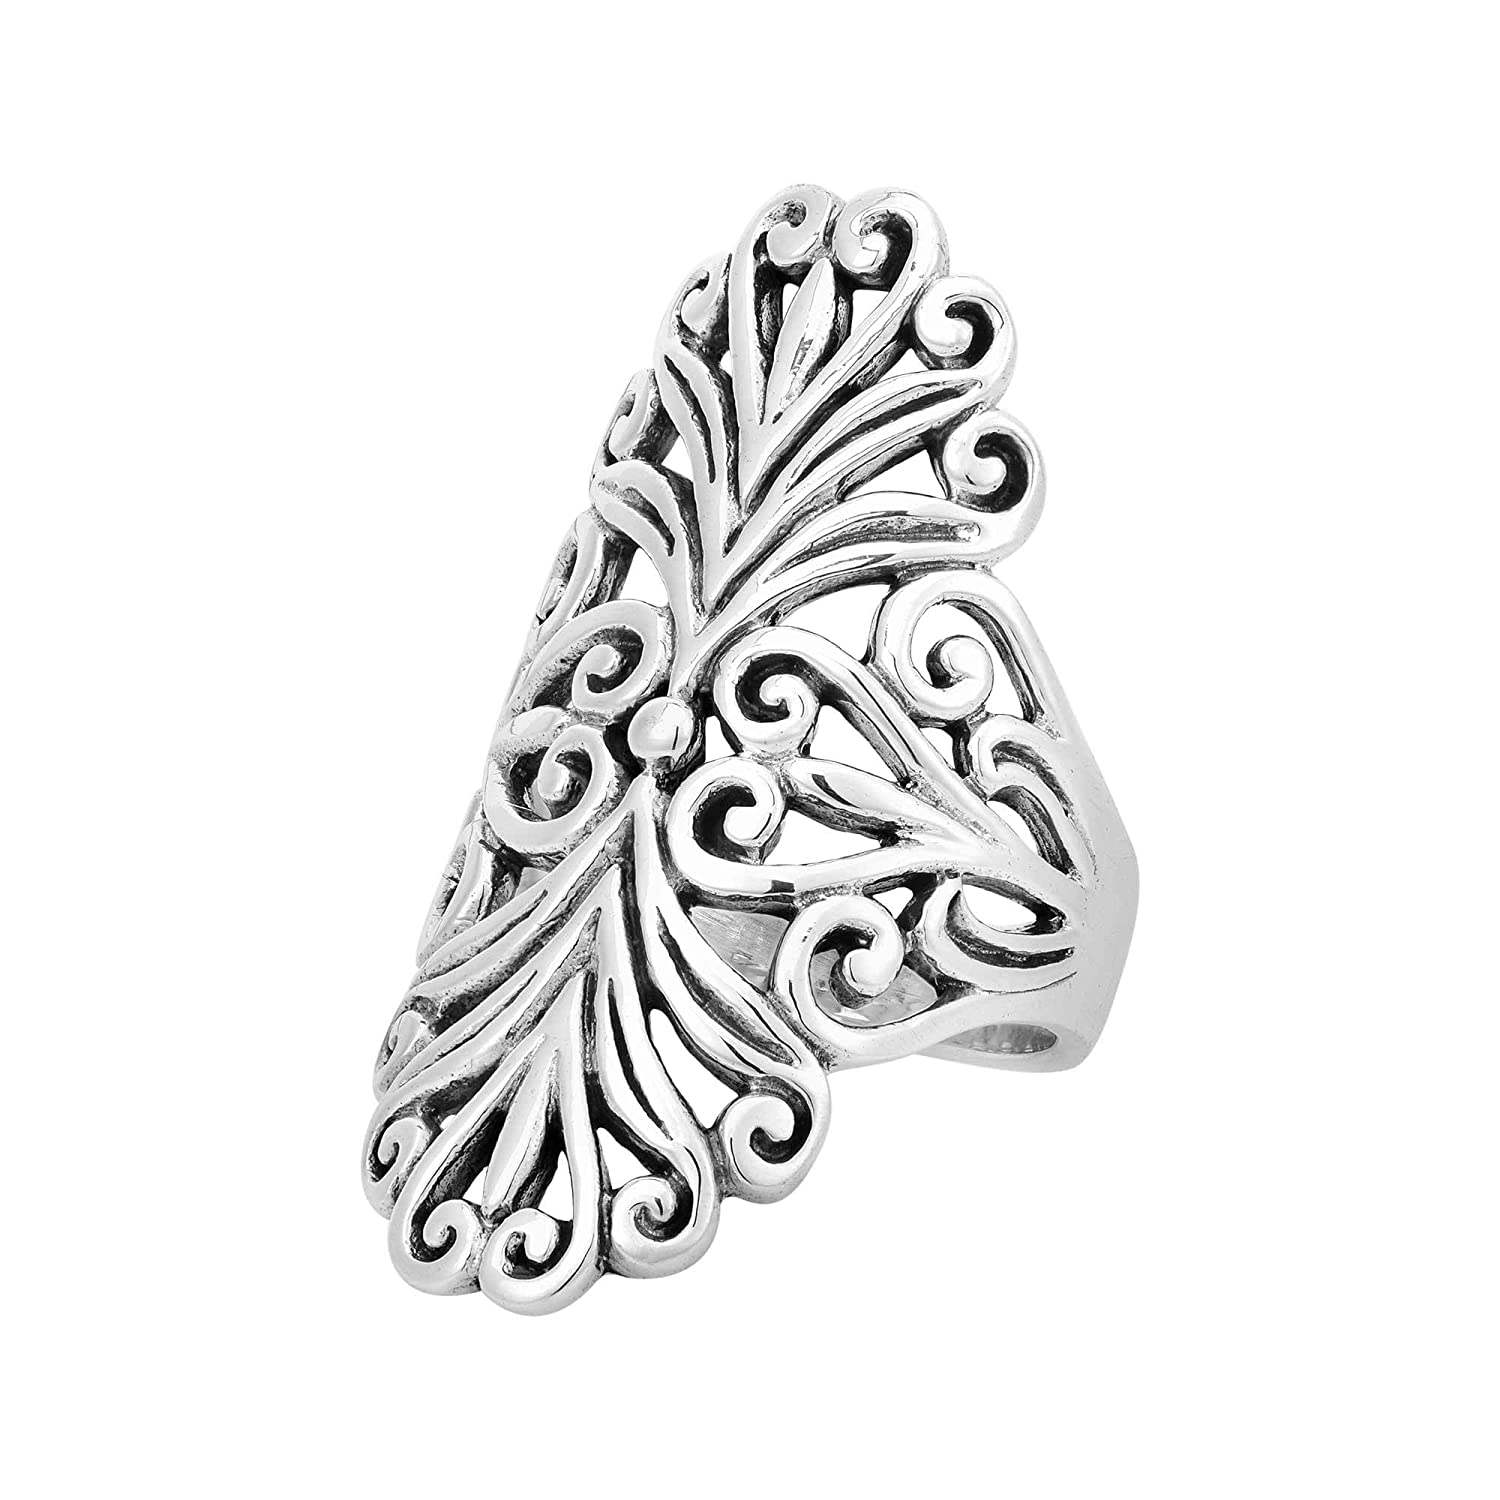 AeraVida Vintage Inspired Oval Heart in Swirls .925 Sterling Silver Ring